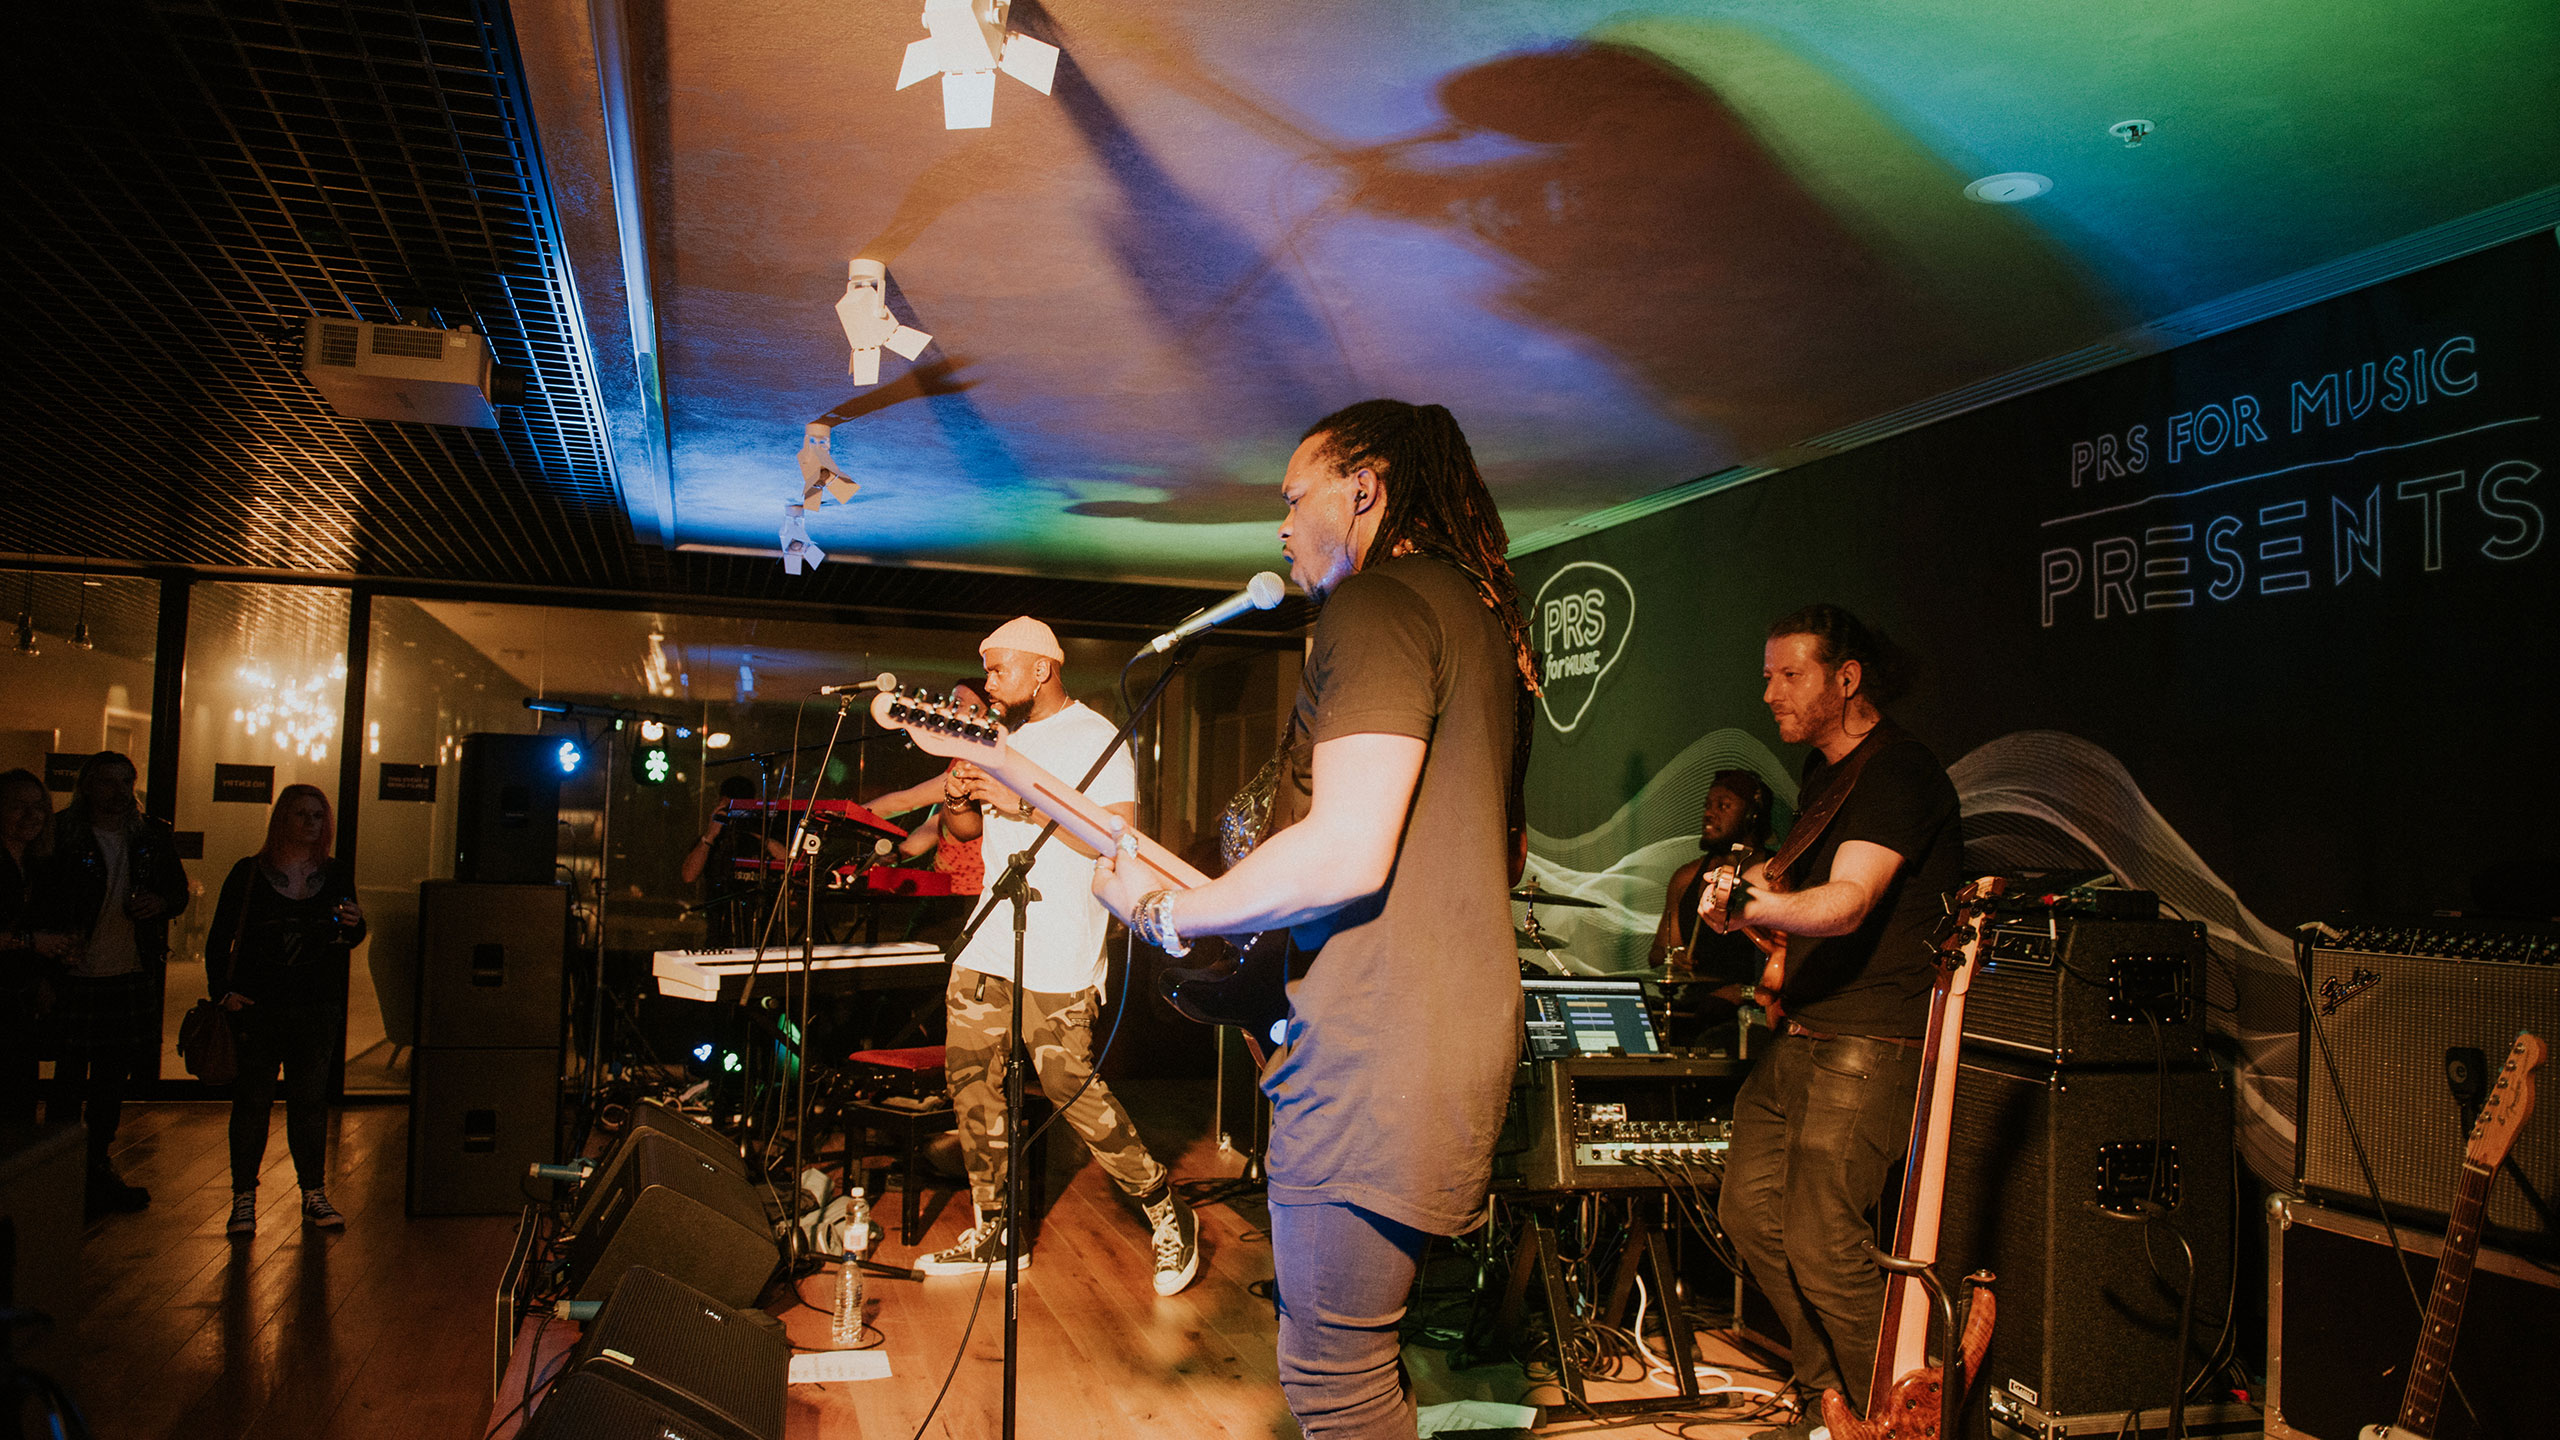 Jodie Abacus performs with his live band at PRS for Music Presents